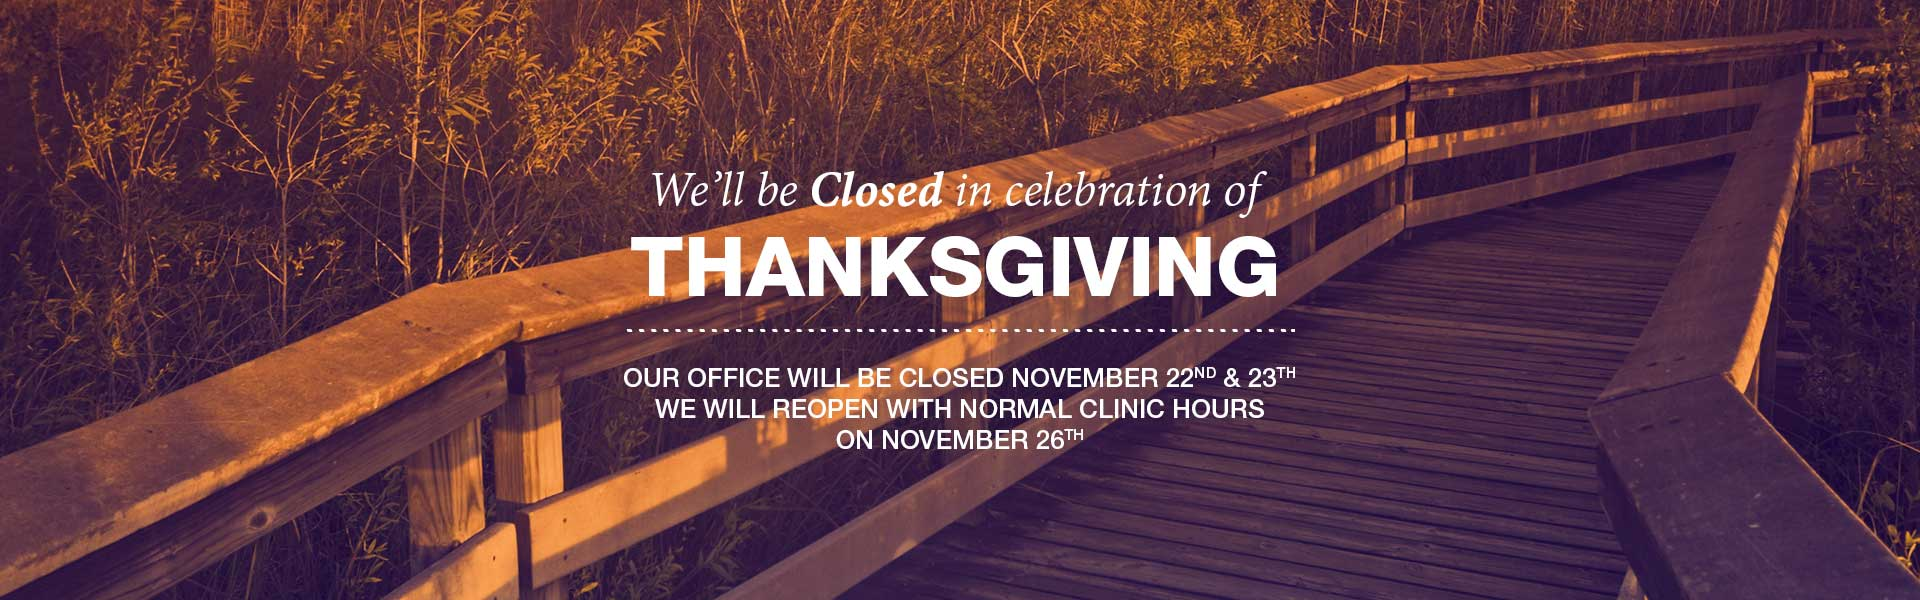 Closed office for Thanksgiving Banner - East Alabama Ear, Nose & Throat P.C.